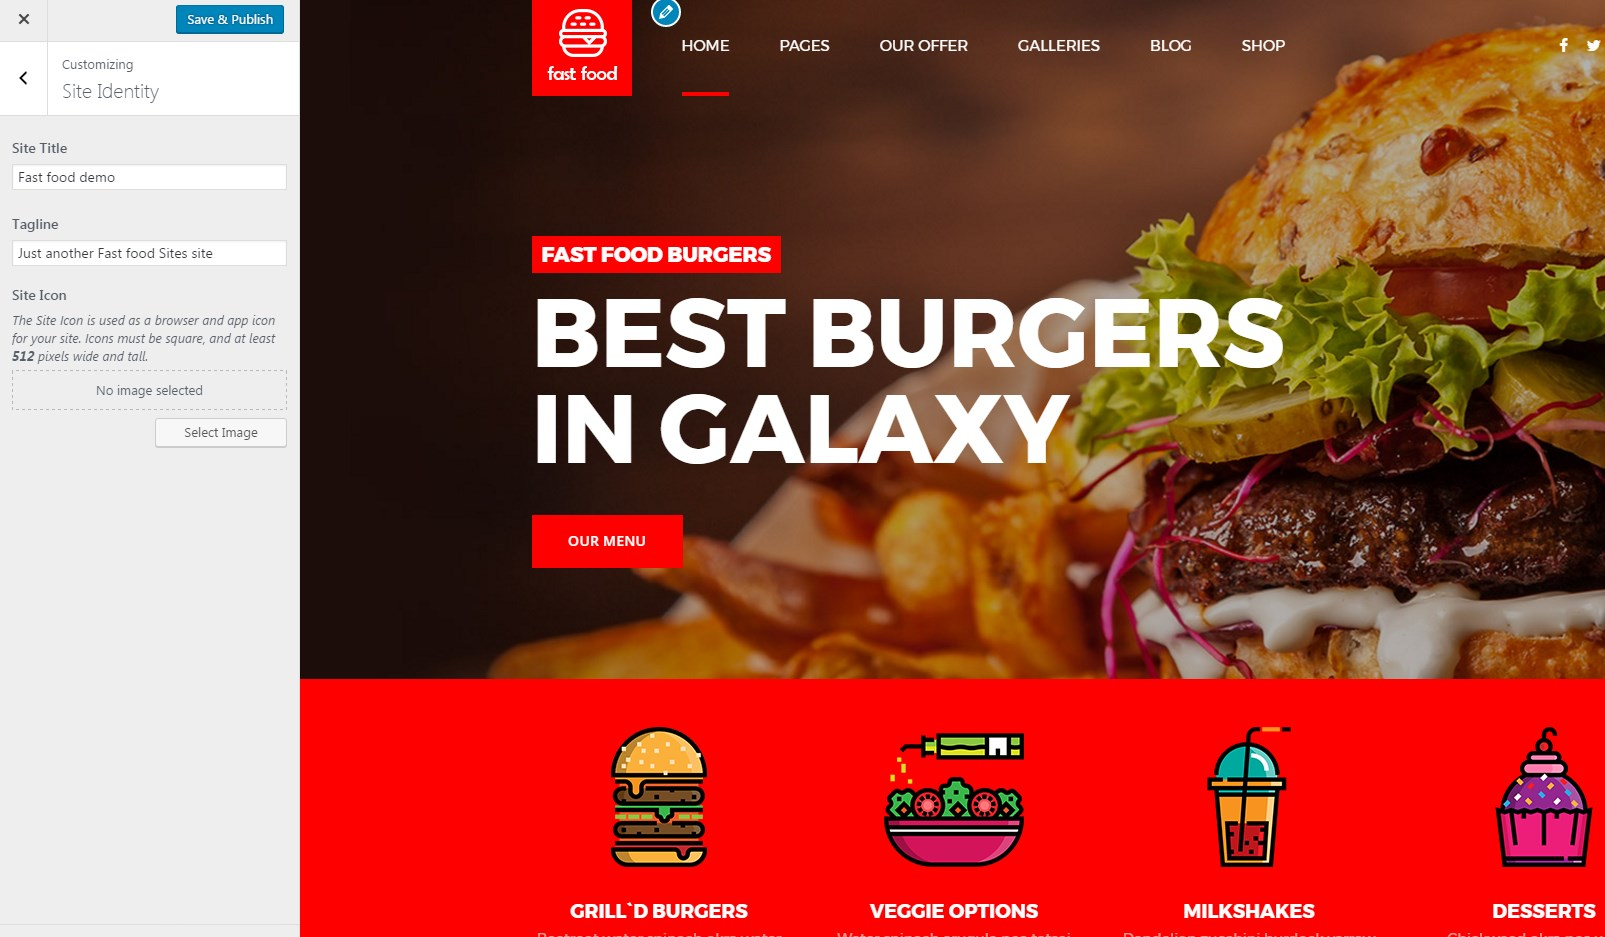 http://documentation.bold-themes.com/fast-food/wp-content/uploads/sites/13/2016/07/19-1.jpg